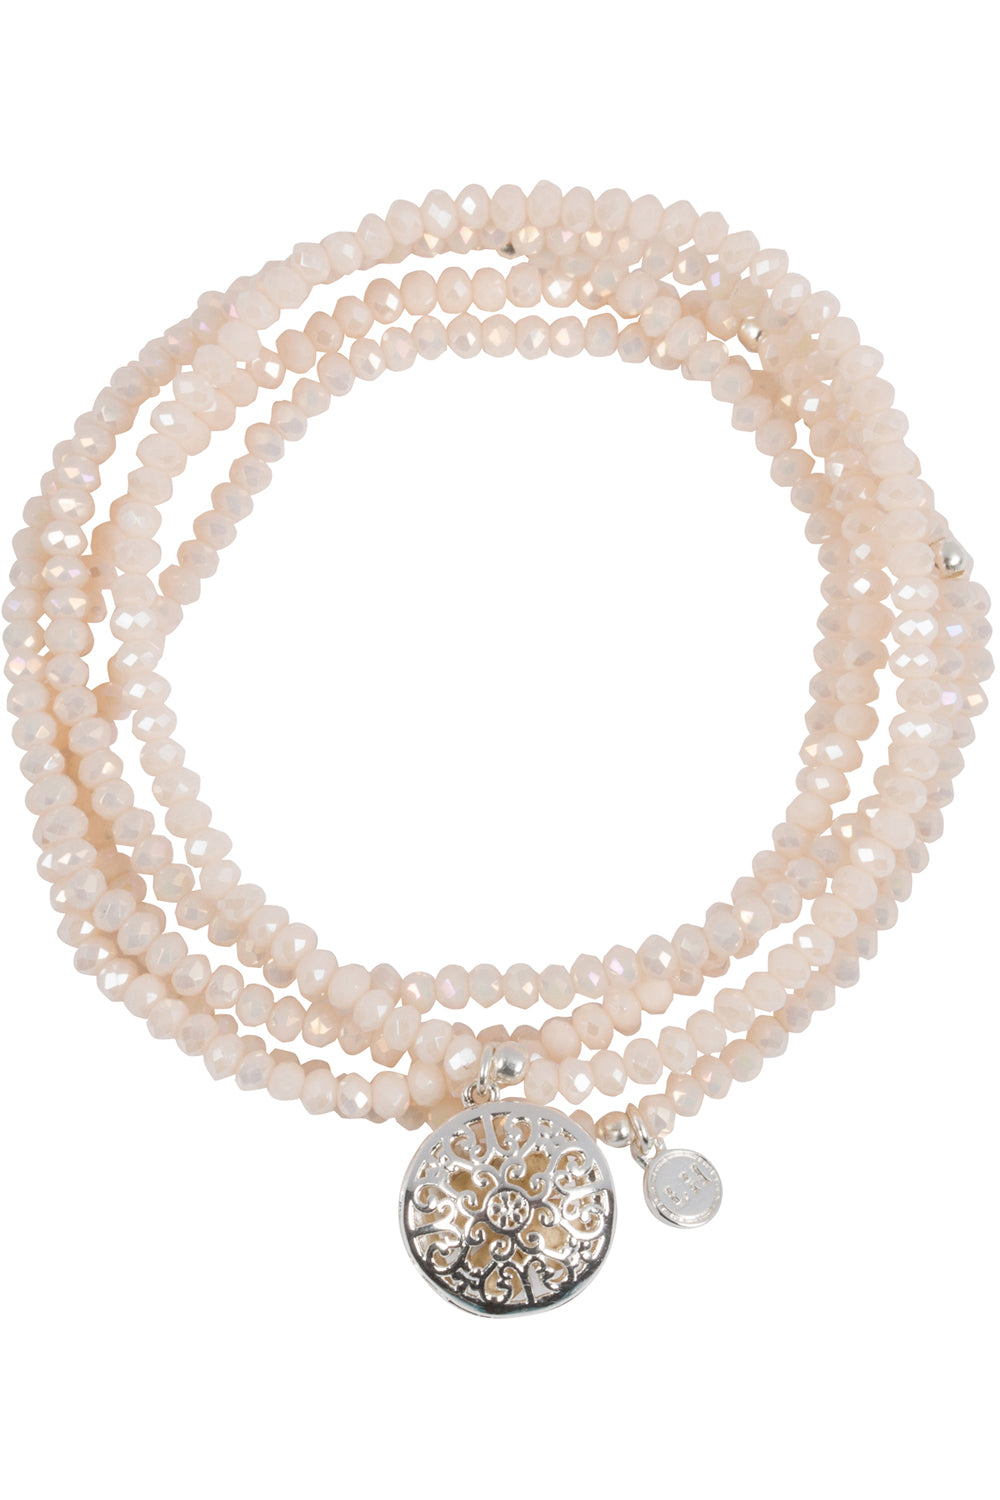 Crystal Stack Set - White